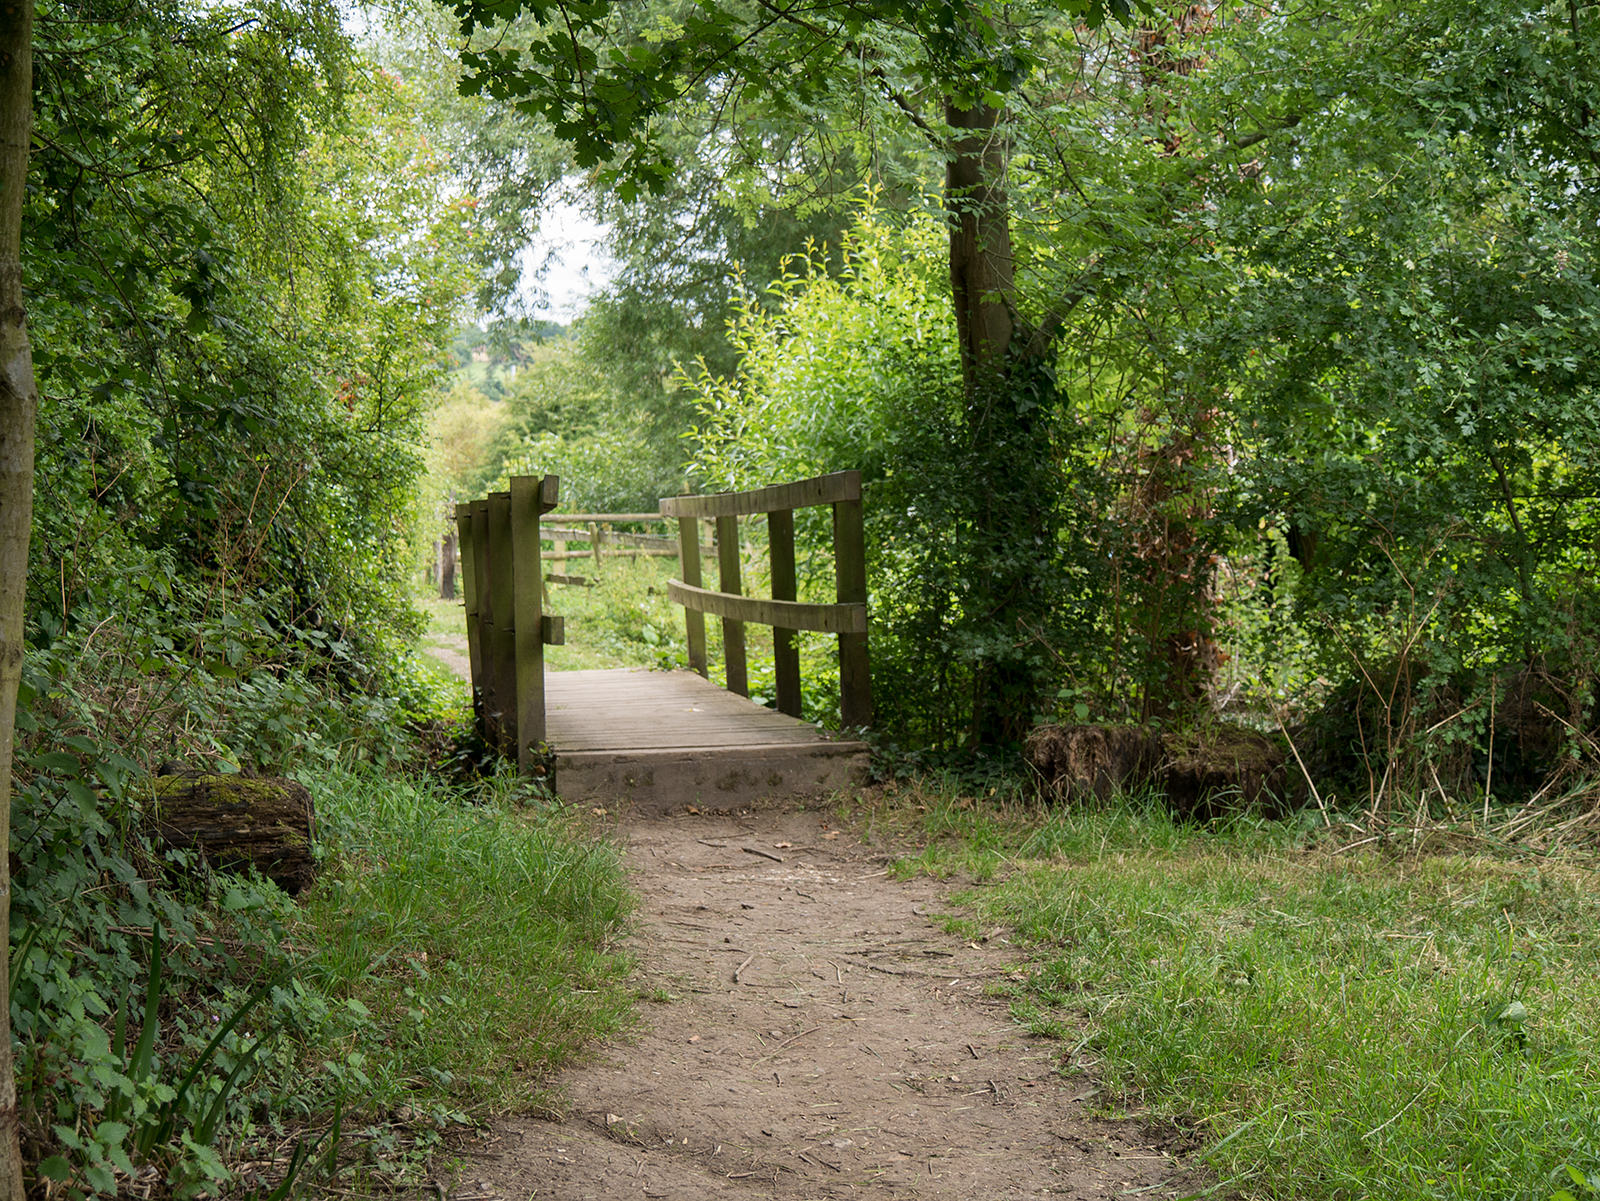 Small bridge helps the path return towards the riverside